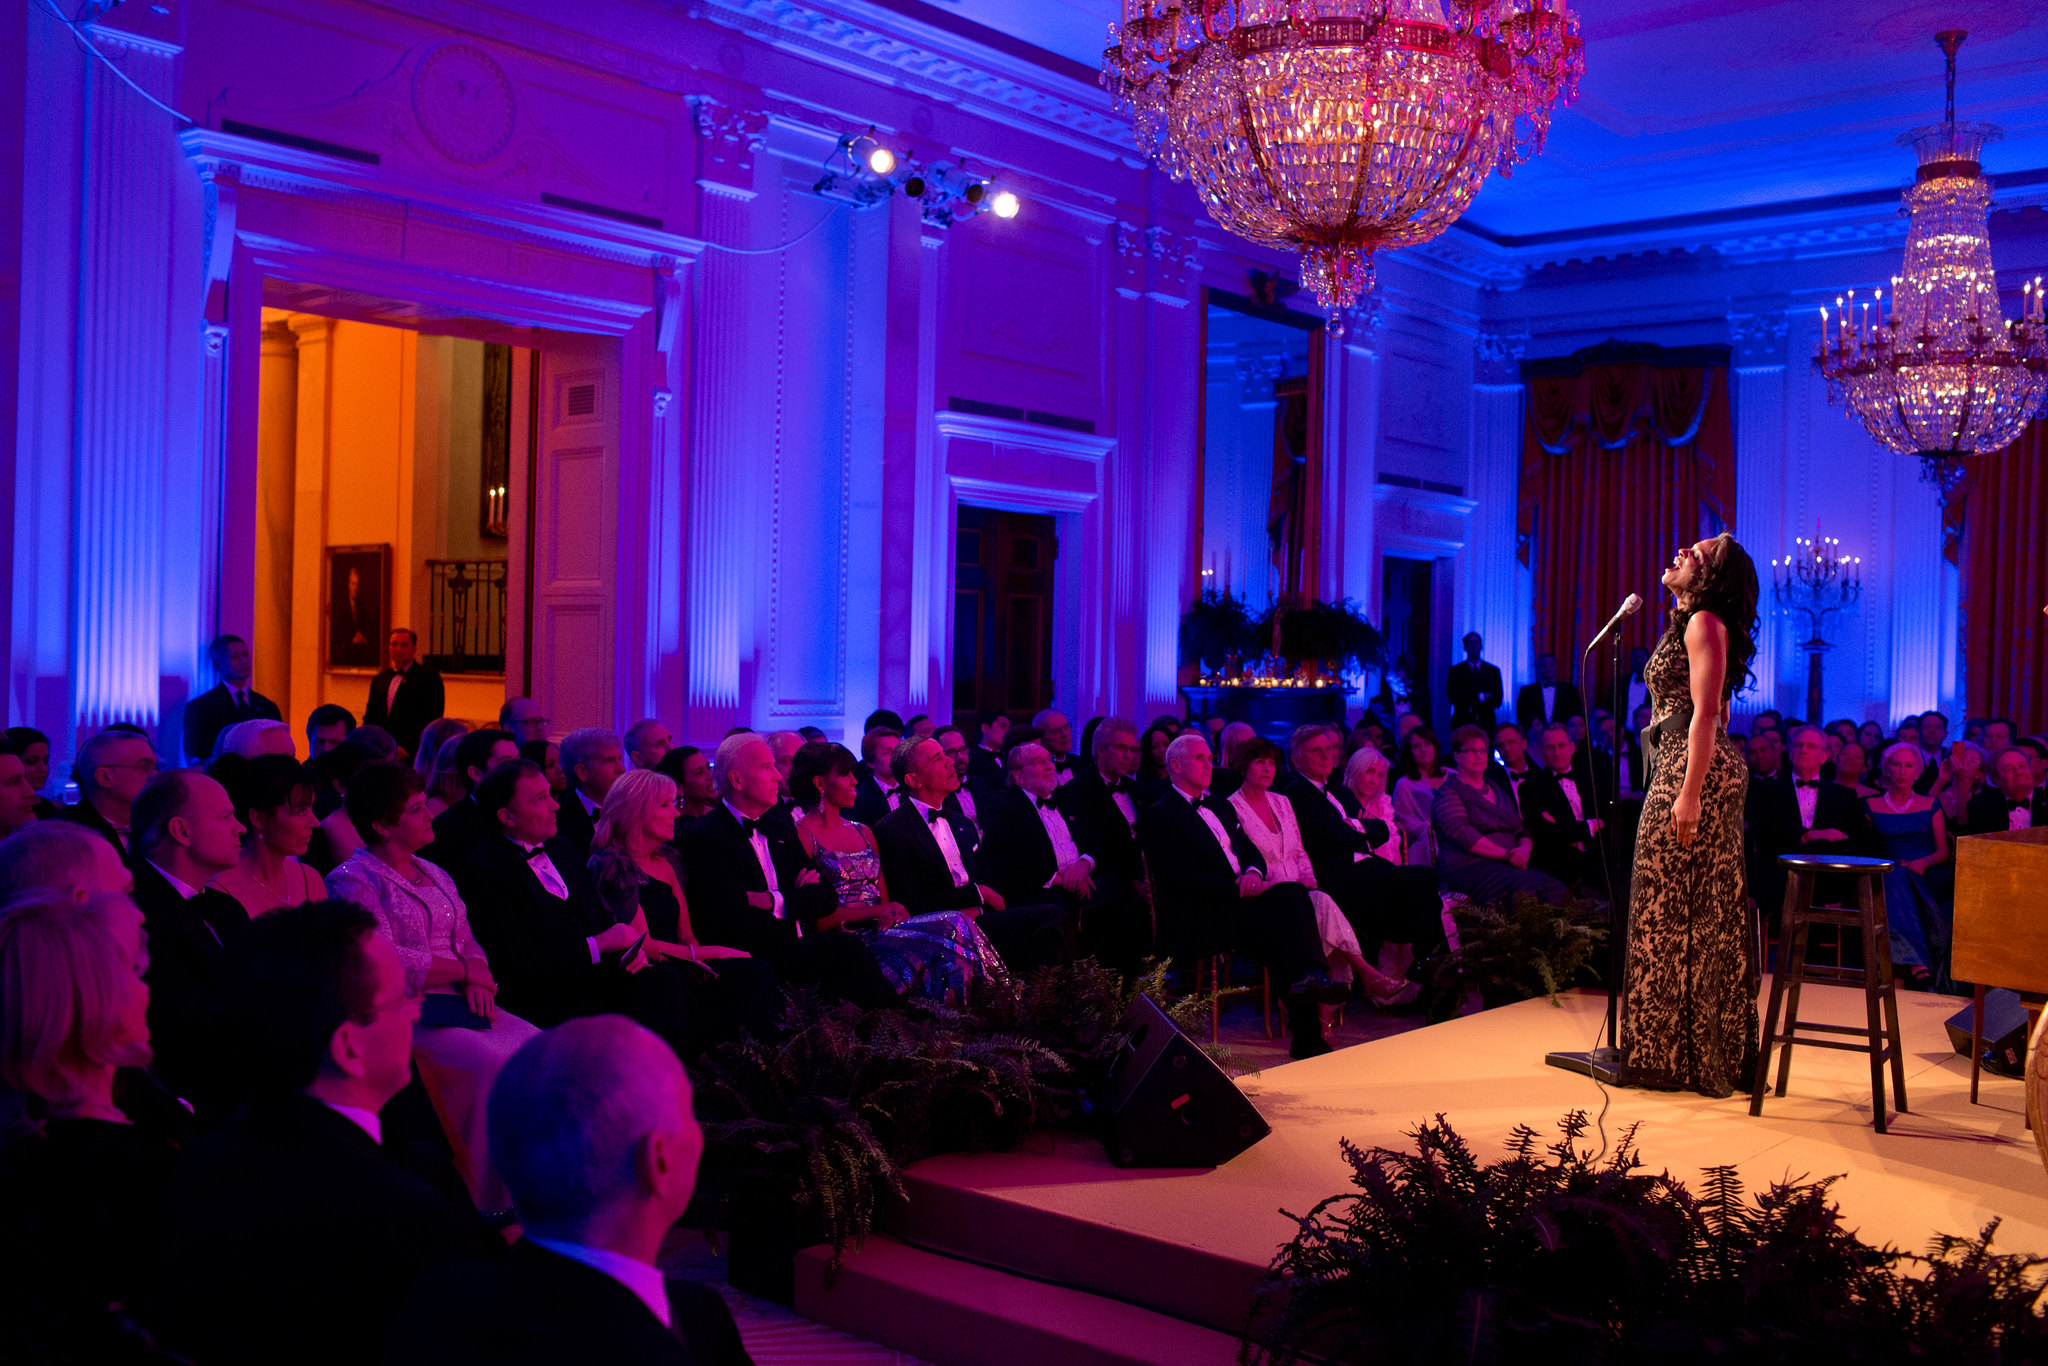 Audra McDonald performs at the White House on February 24, 2013. Photo credit: IIP Photo Archive [ CC BY-NC 2.0 ],  via Flickr